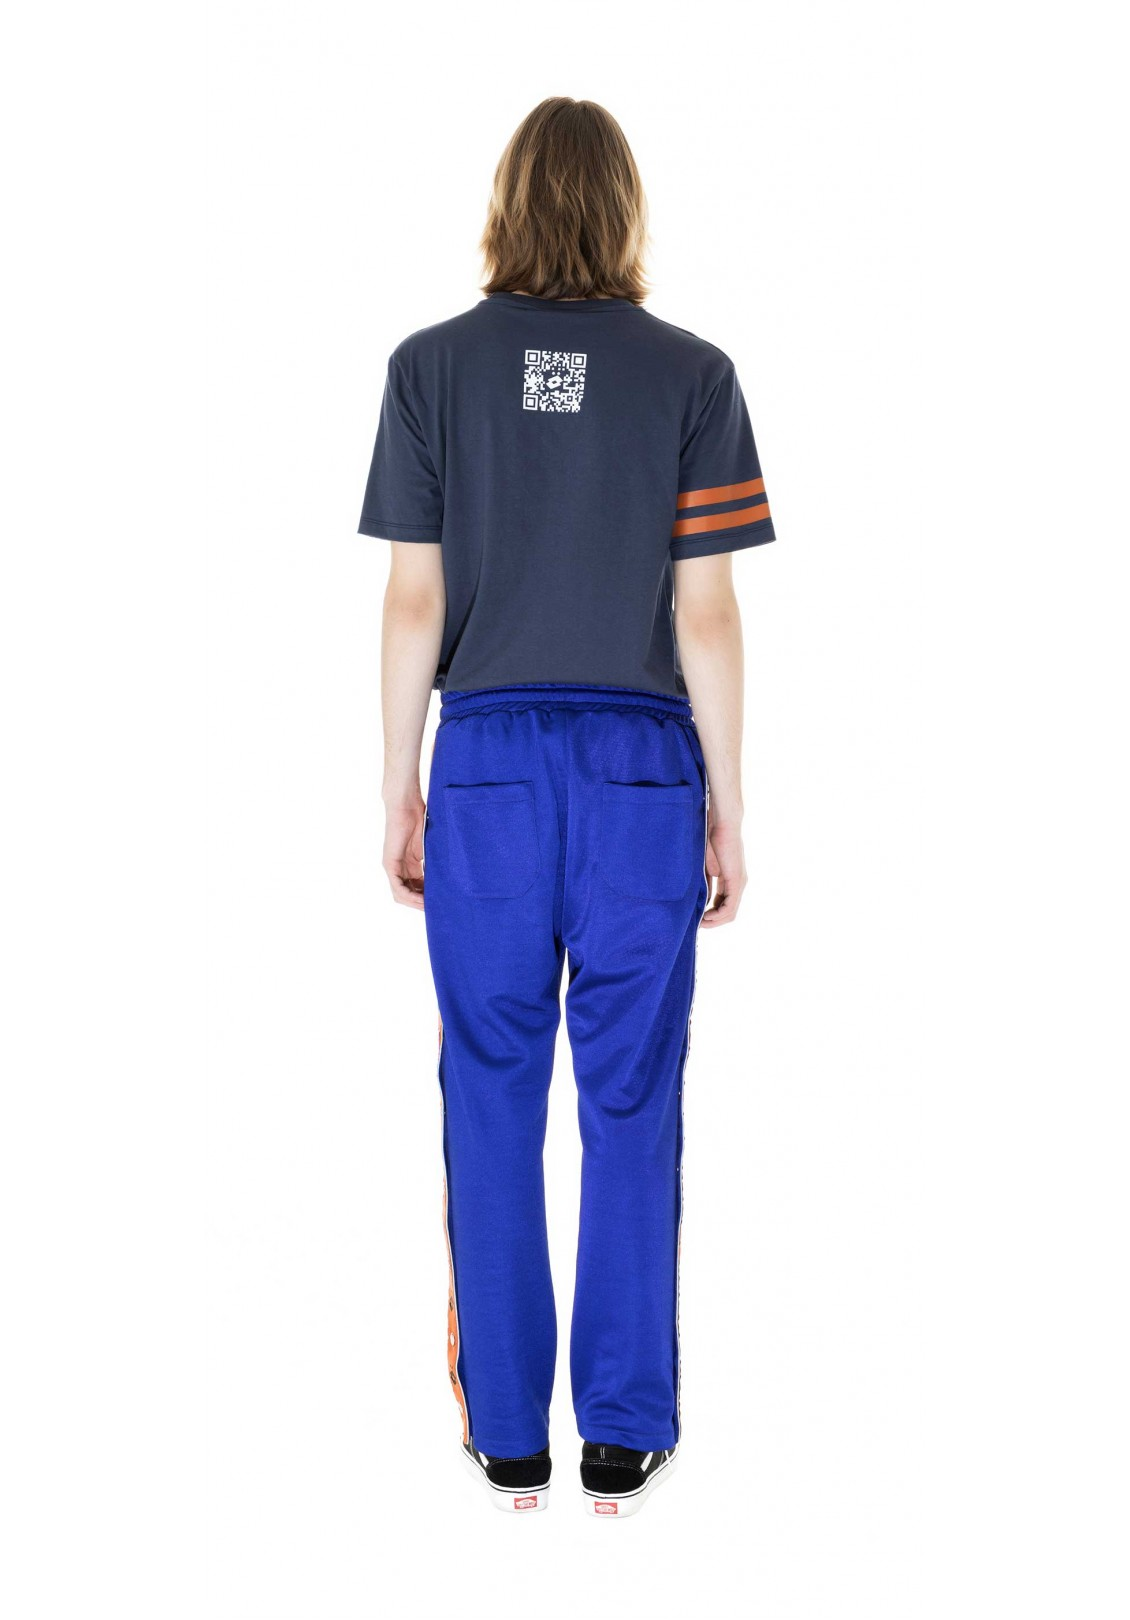 JOGGERS - LTGU004 - GAELLE PARIS X LOTTO